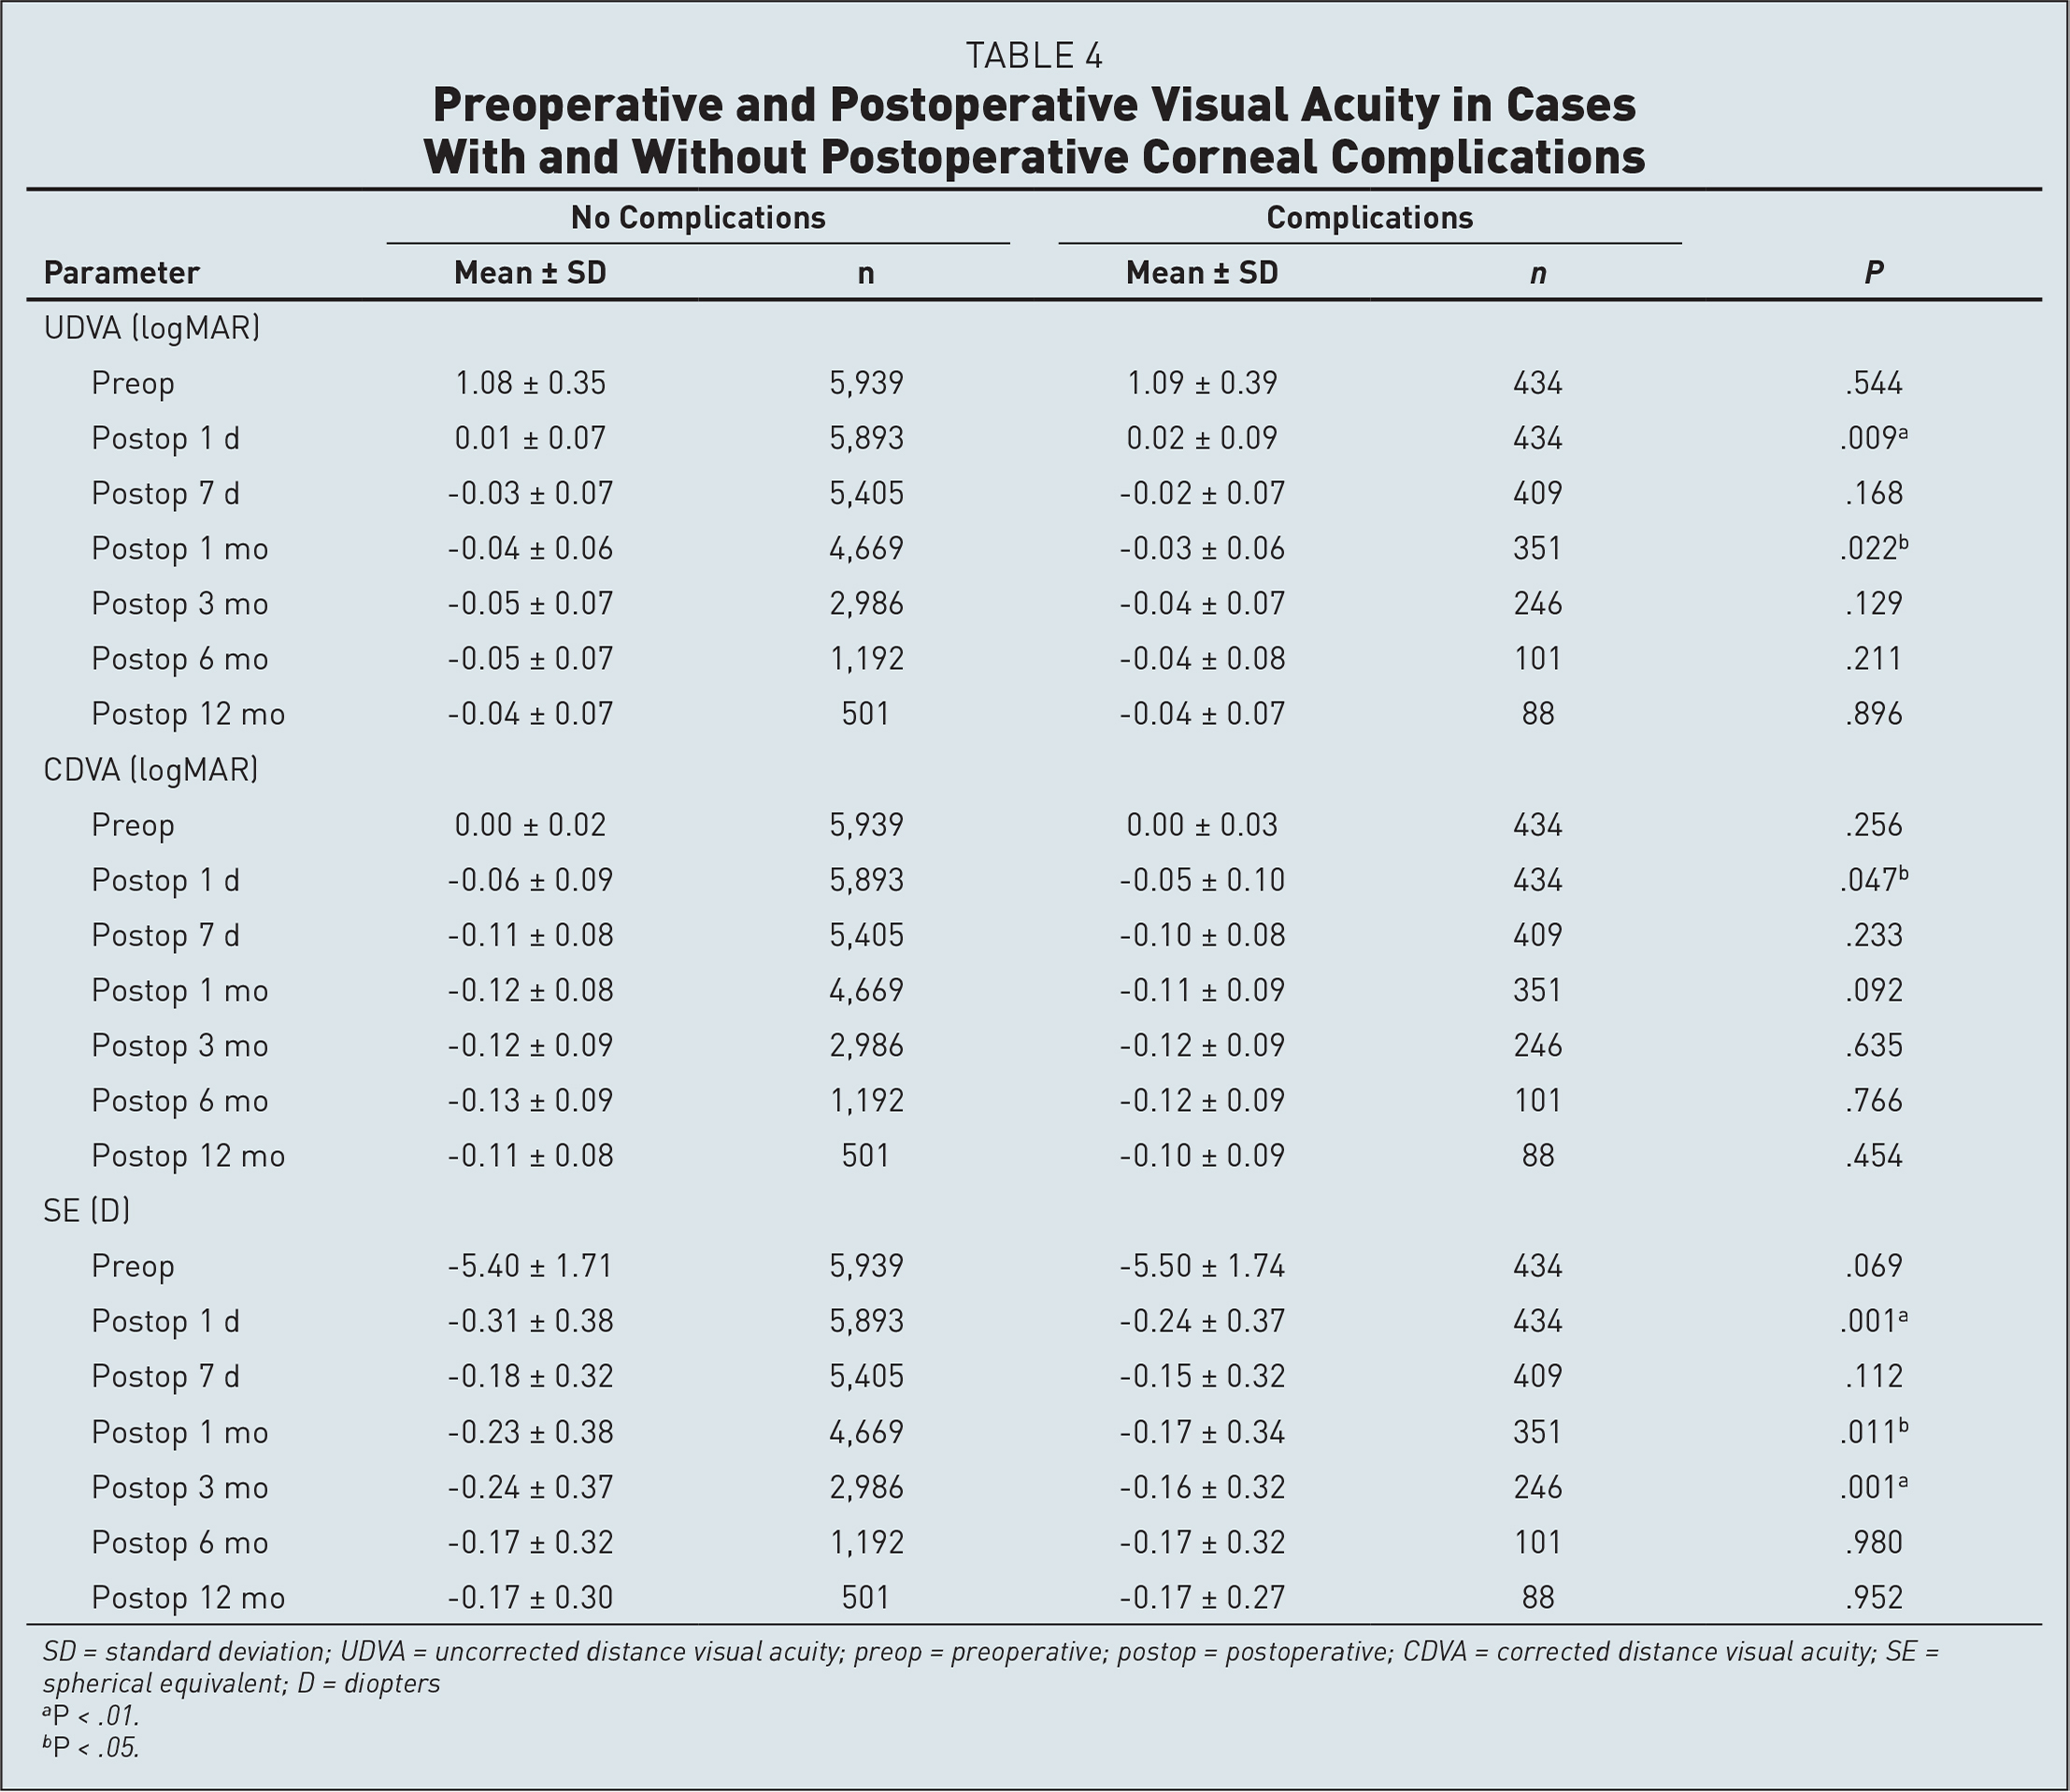 Preoperative and Postoperative Visual Acuity in Cases With and Without Postoperative Corneal Complications